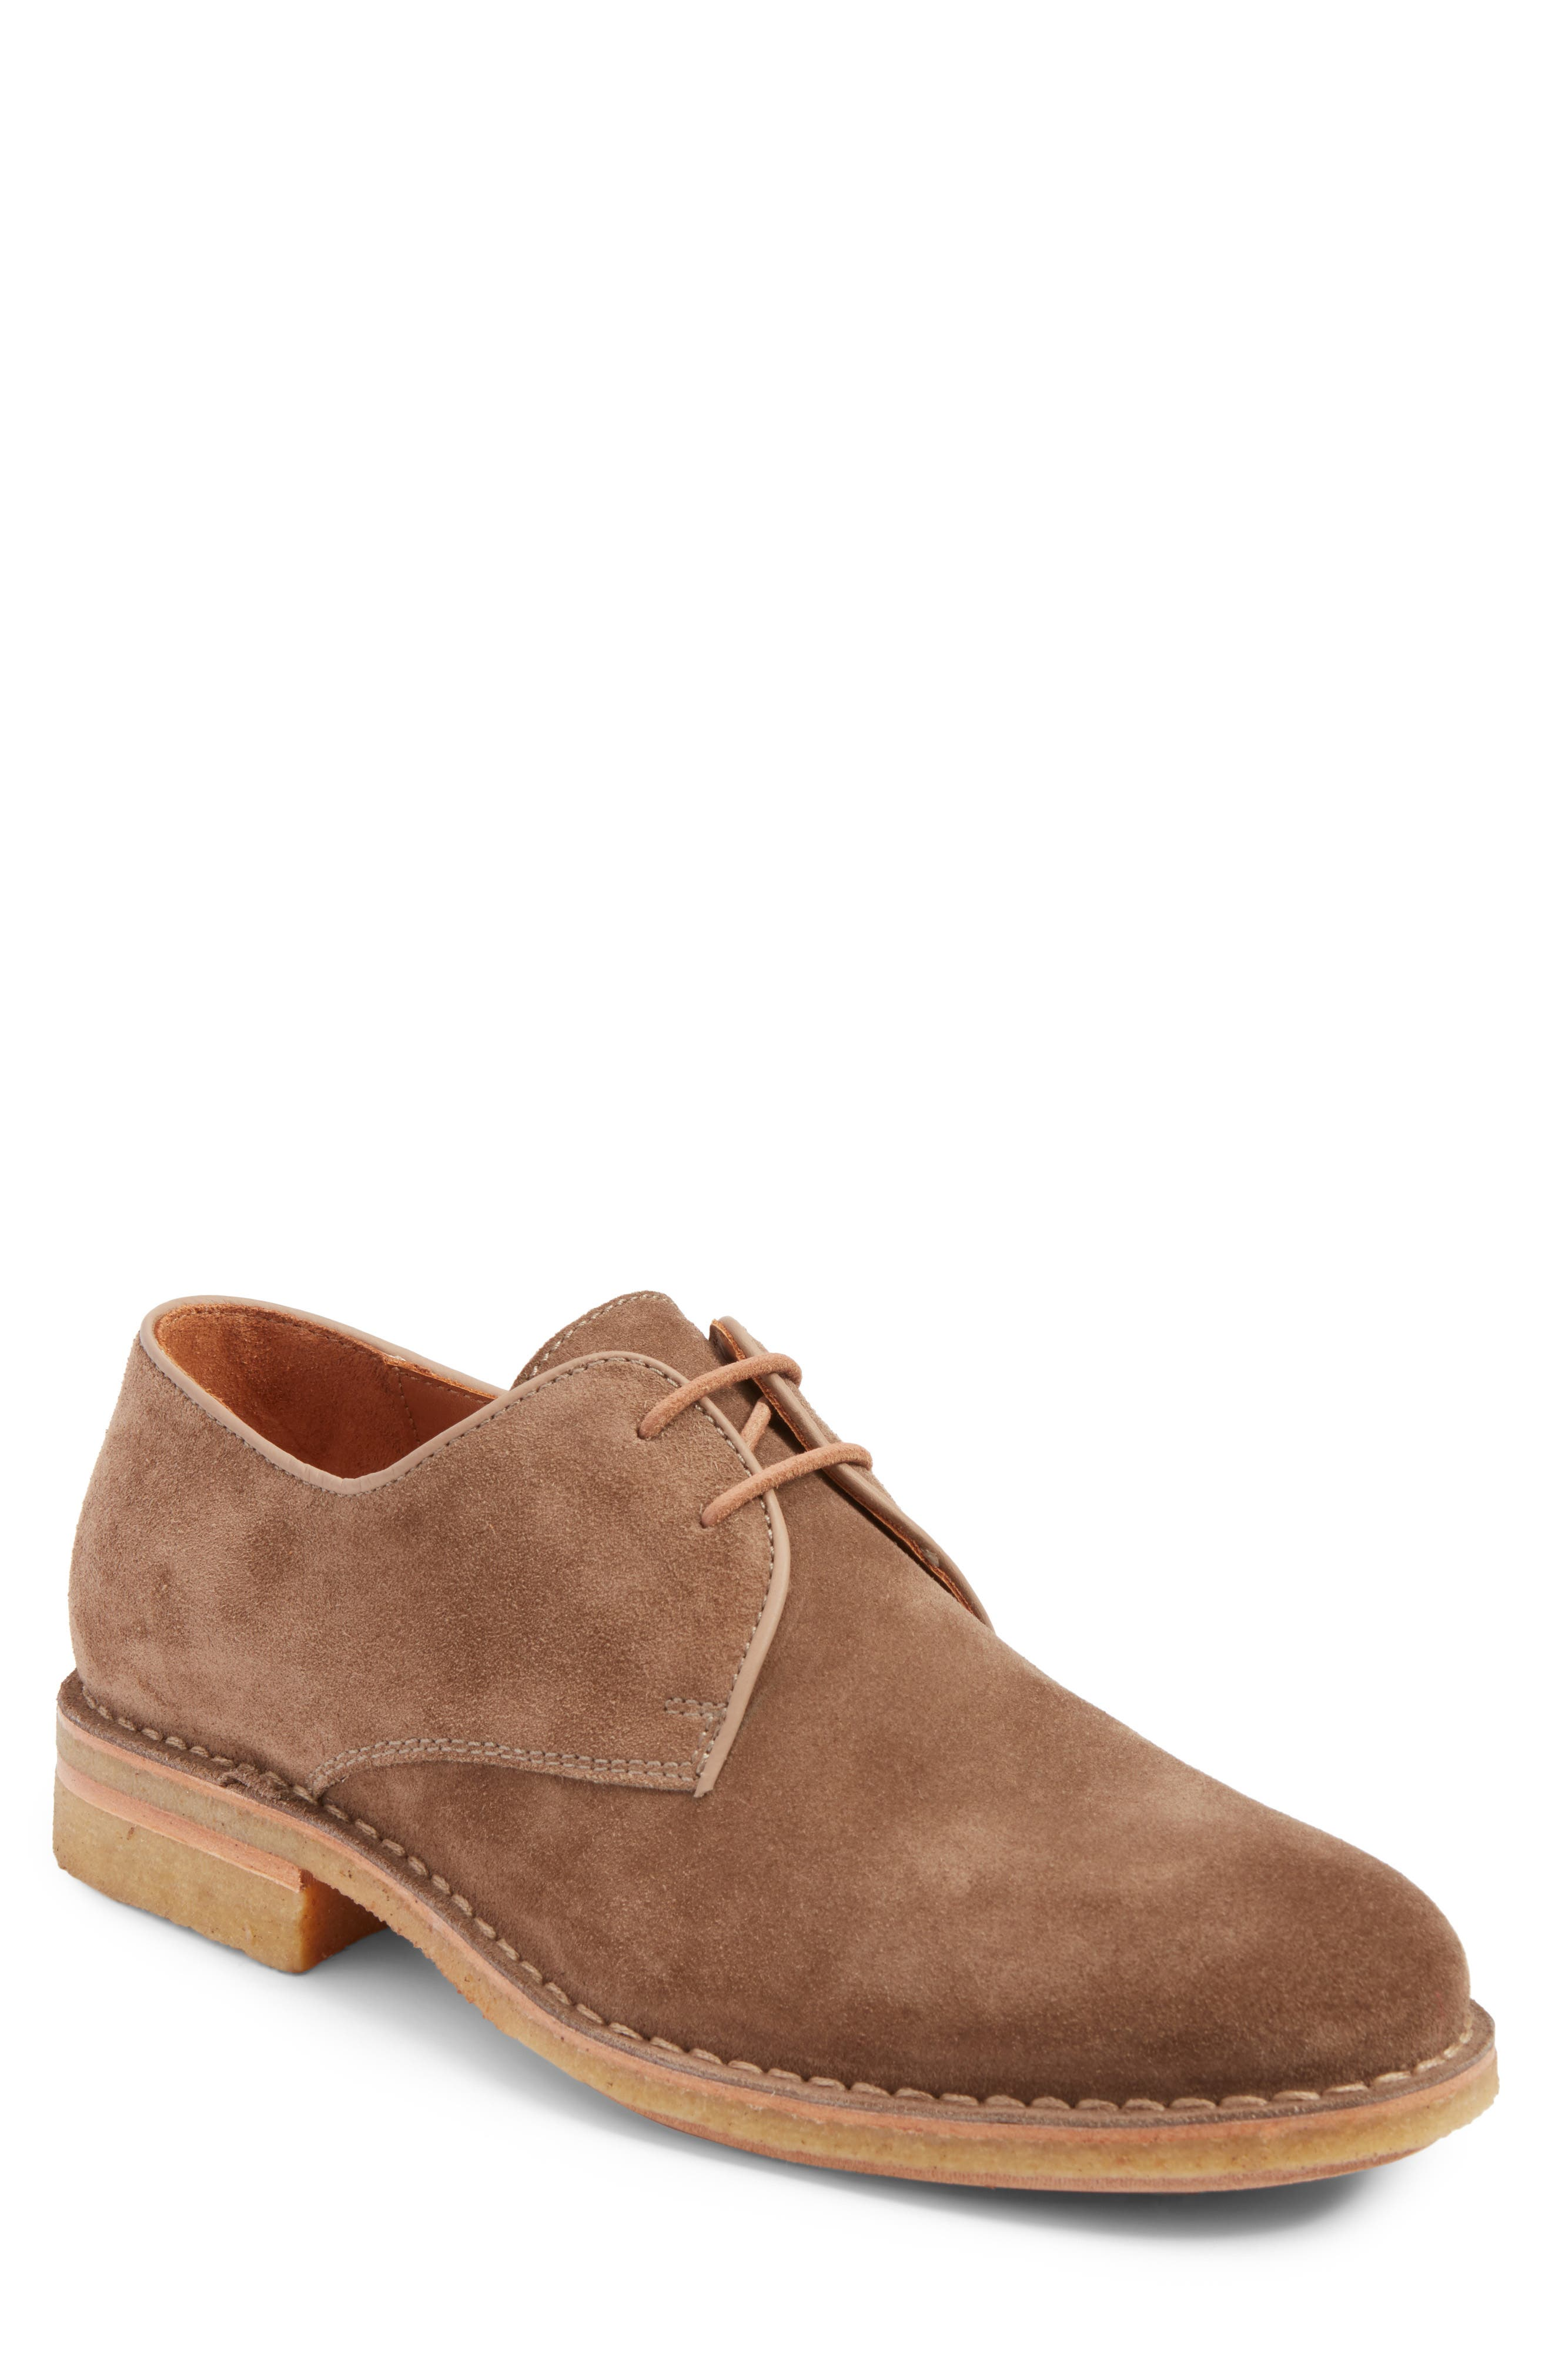 Alternate Image 1 Selected - Aquatalia Otis Buck Shoe (Men)